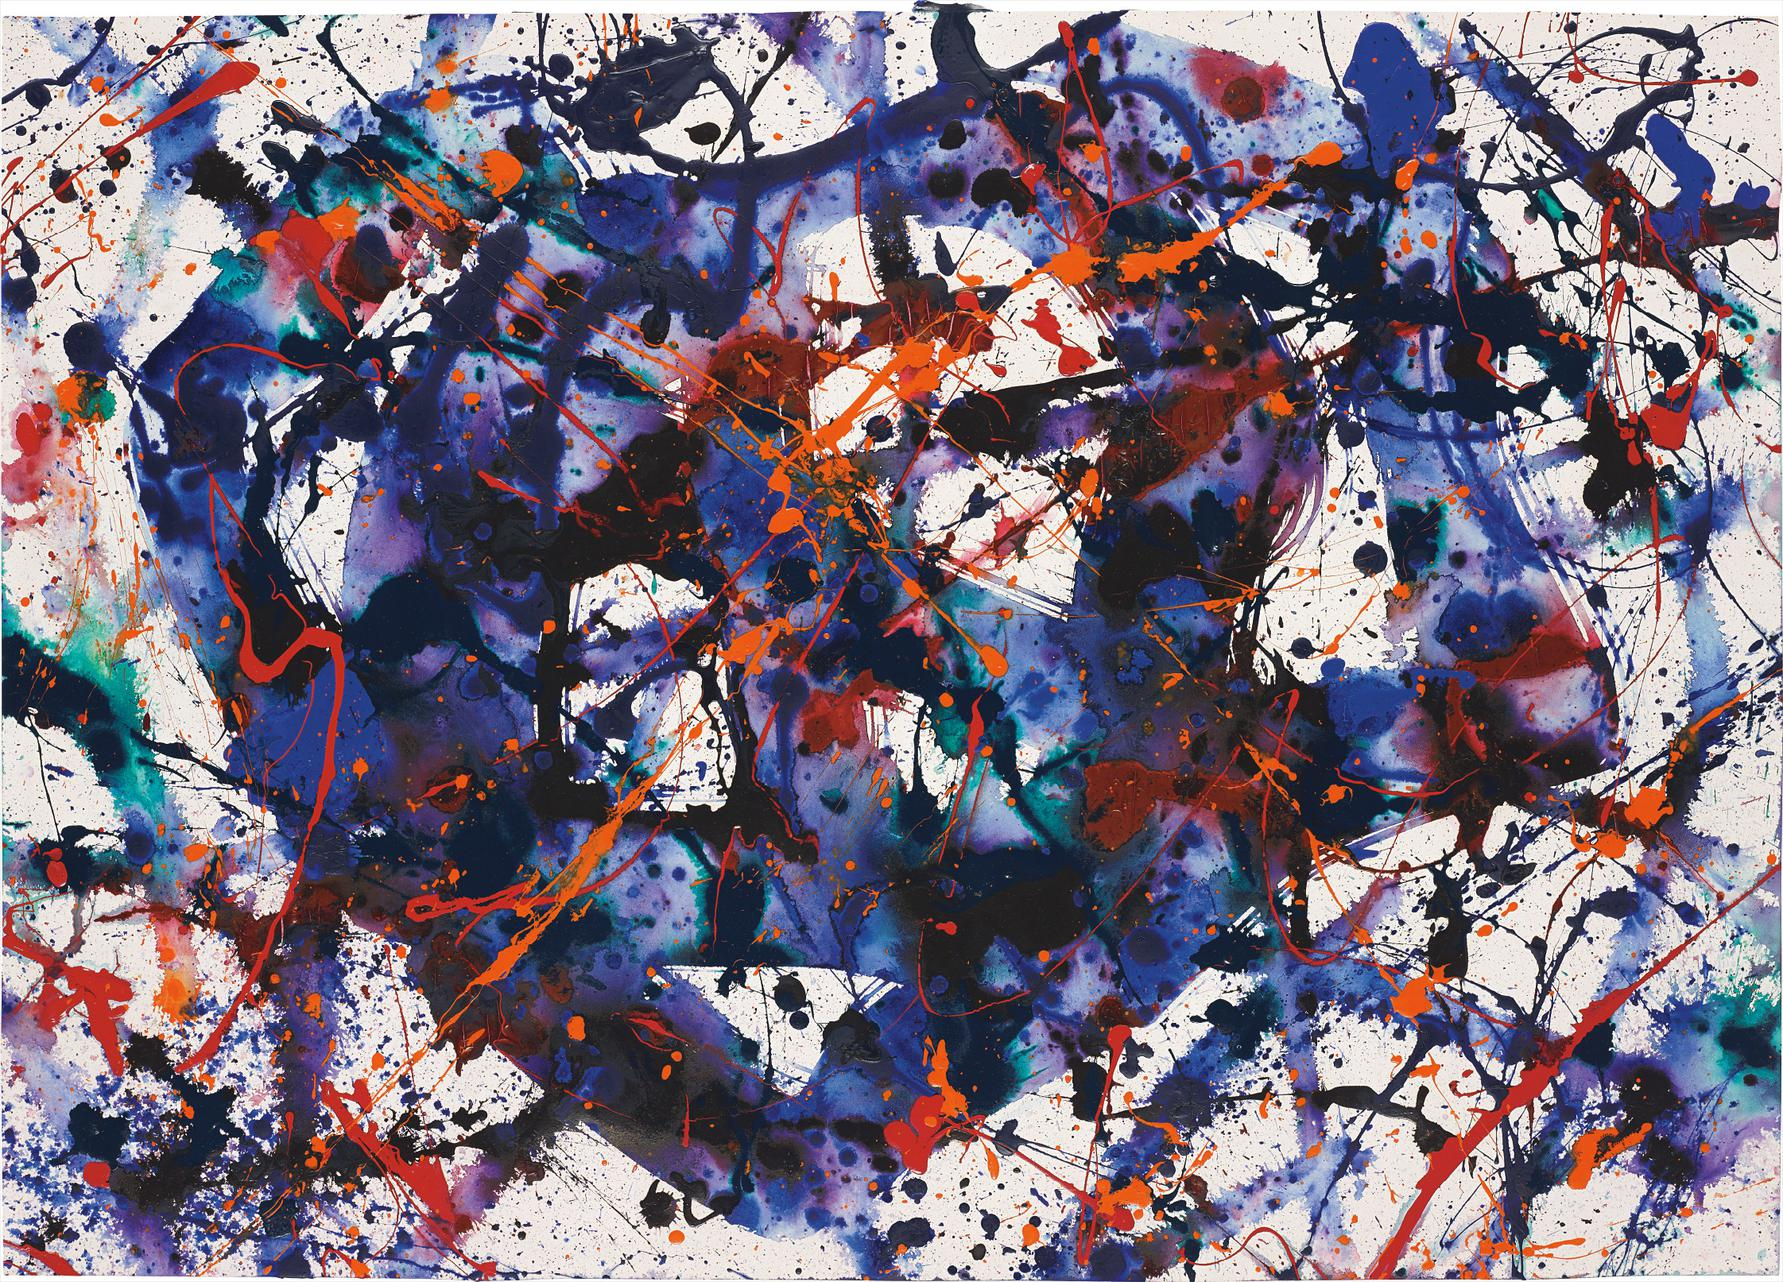 Sam Francis-A Dream, An Image, Auto Portrait-1990